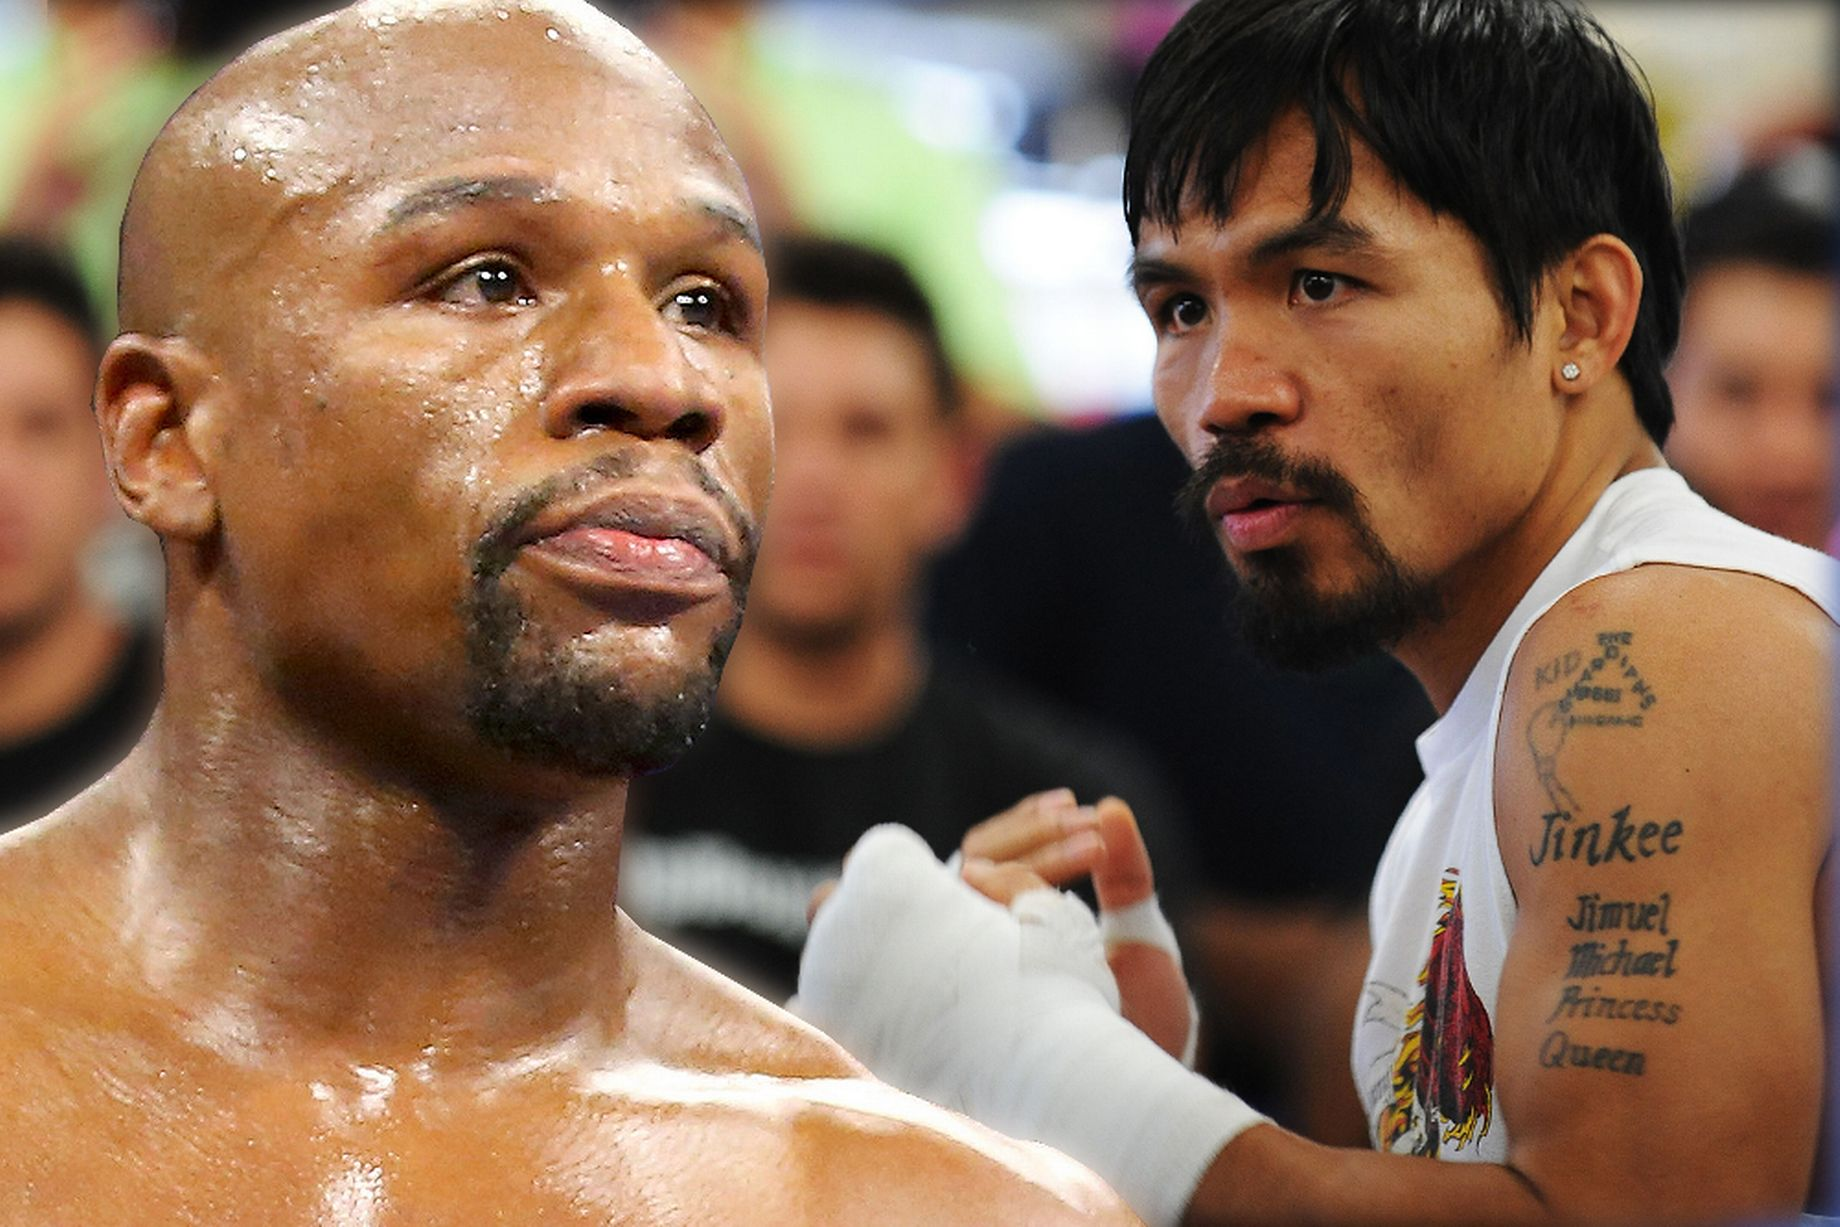 MAIN-Floyd-Mayweather-and-Manny-Pacquiao